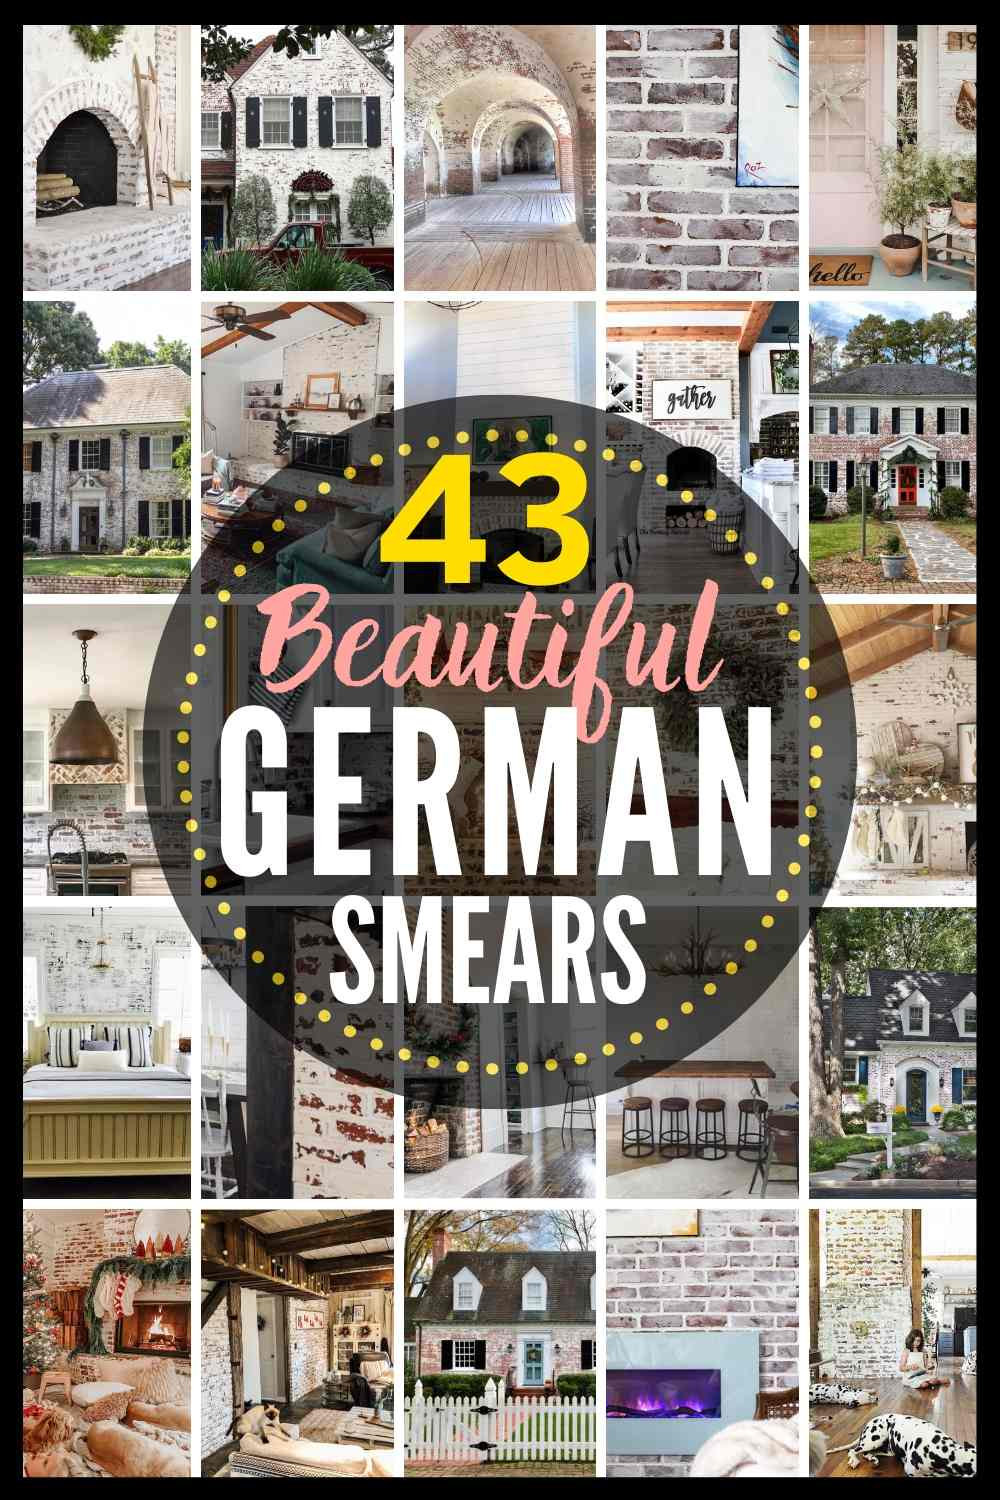 """43 Beautiful German Smears"" with grid of 20 images of different german schmear projects"